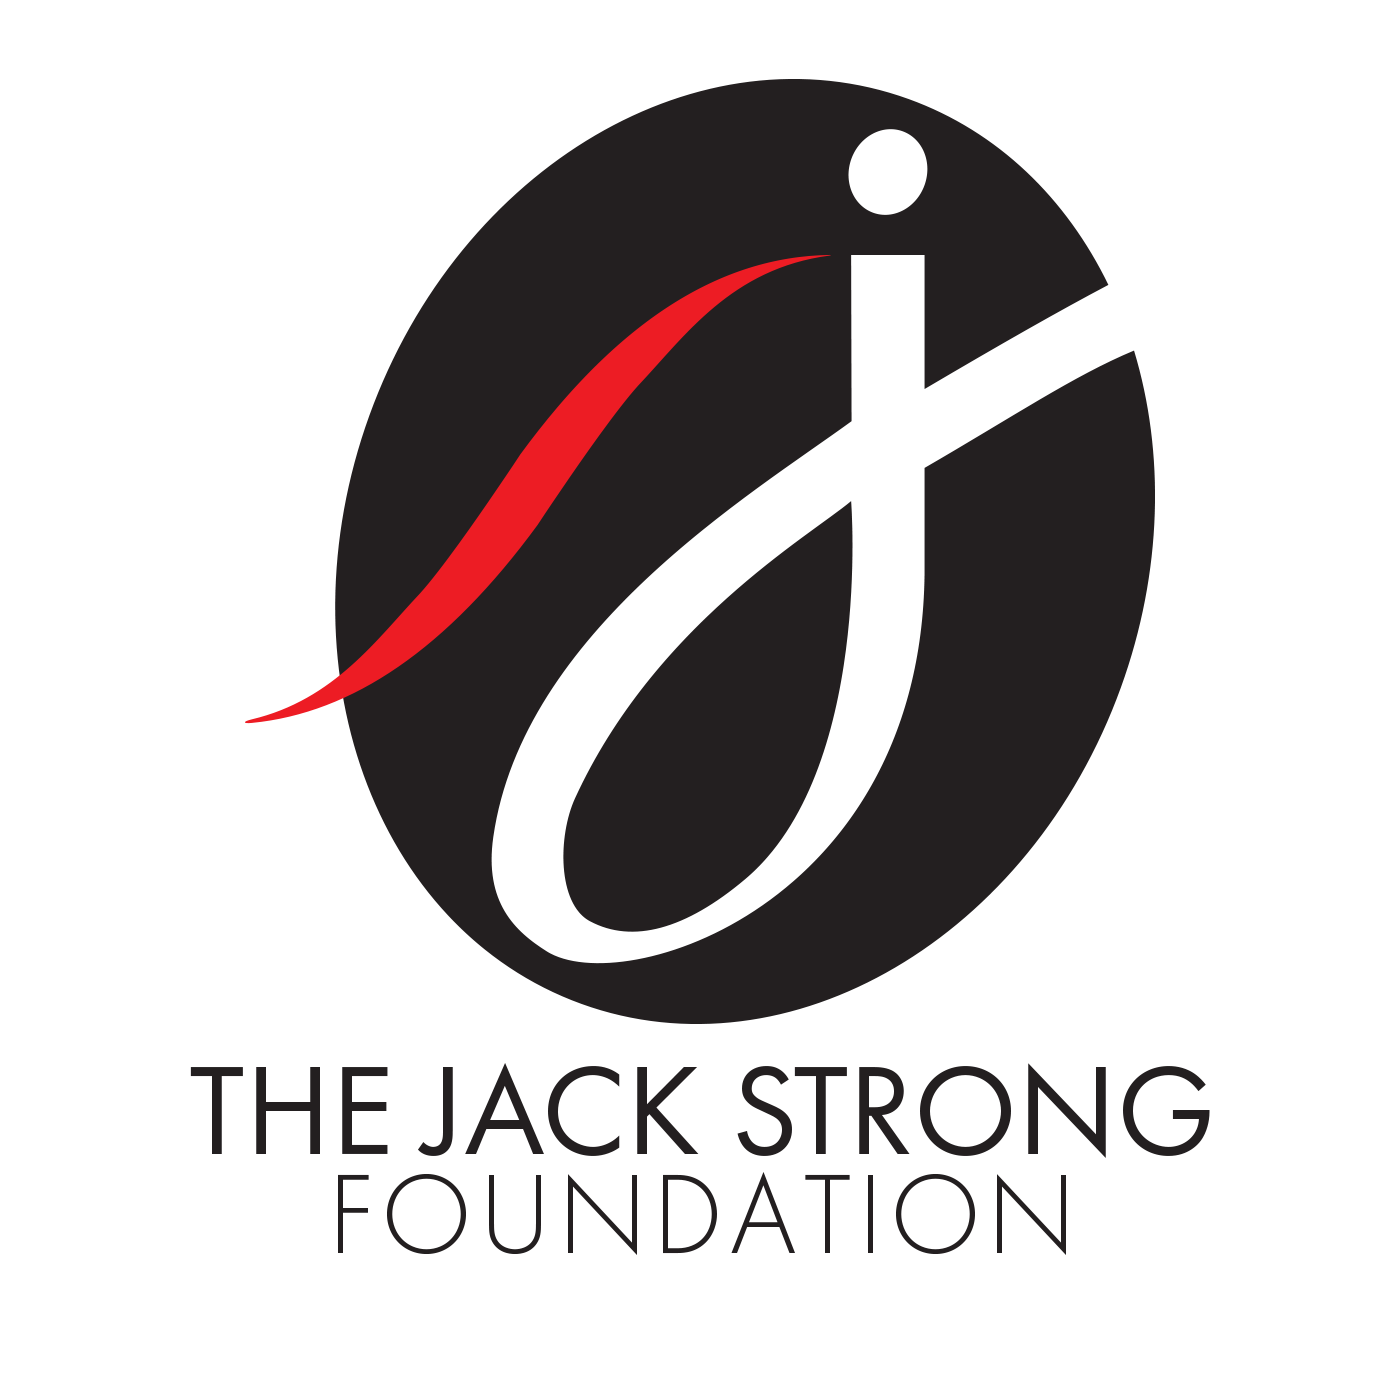 The Jack Strong Foundation